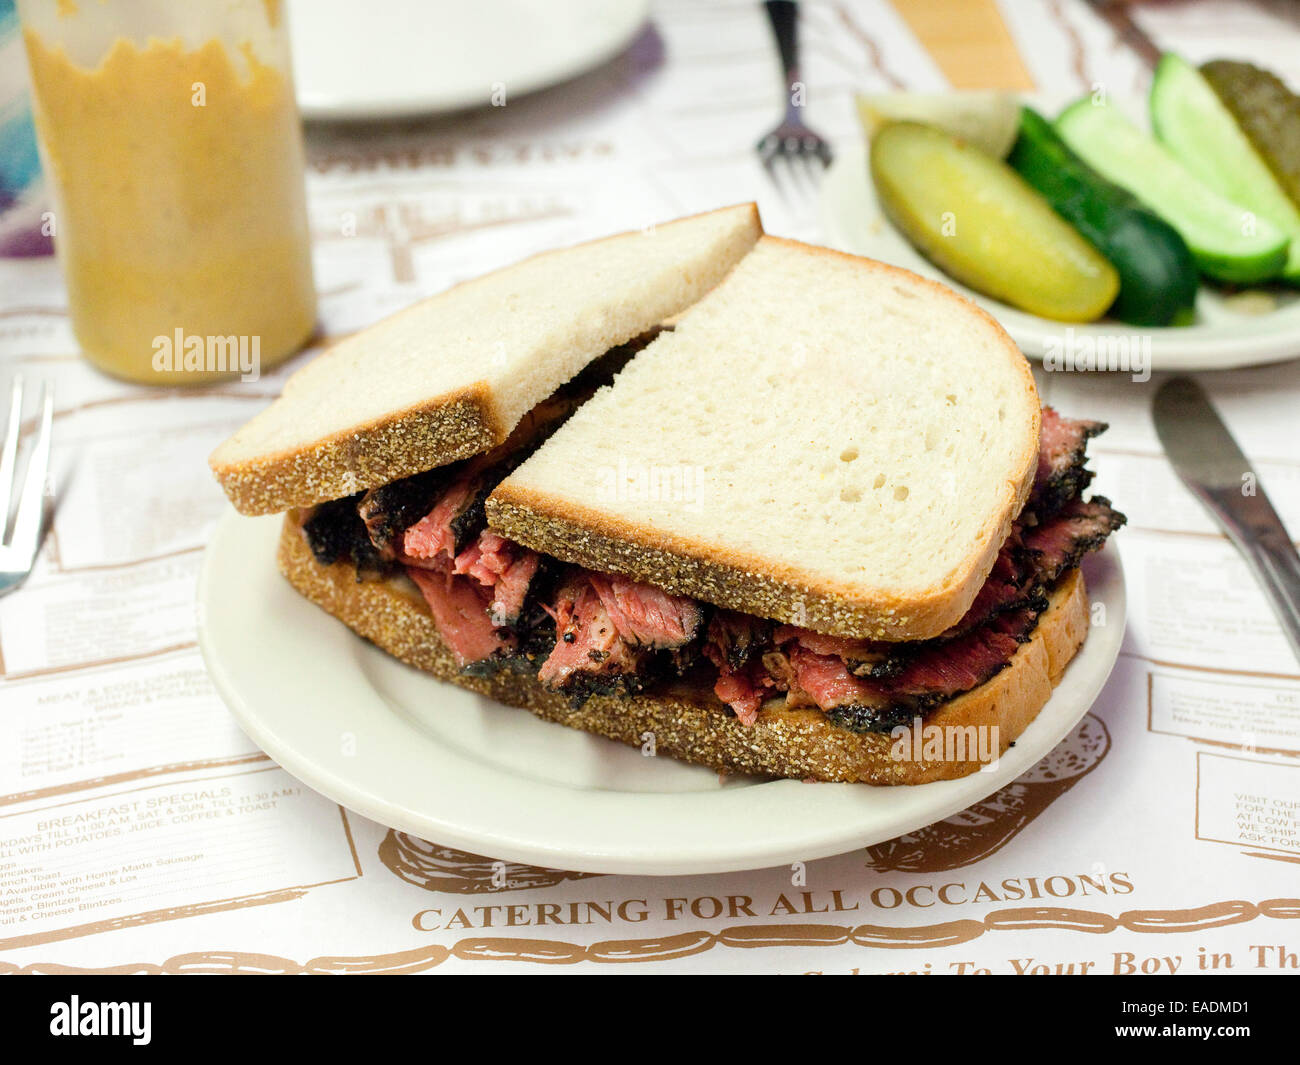 Plated Pastrami on Rye Bread at a restaurant. - Stock Image